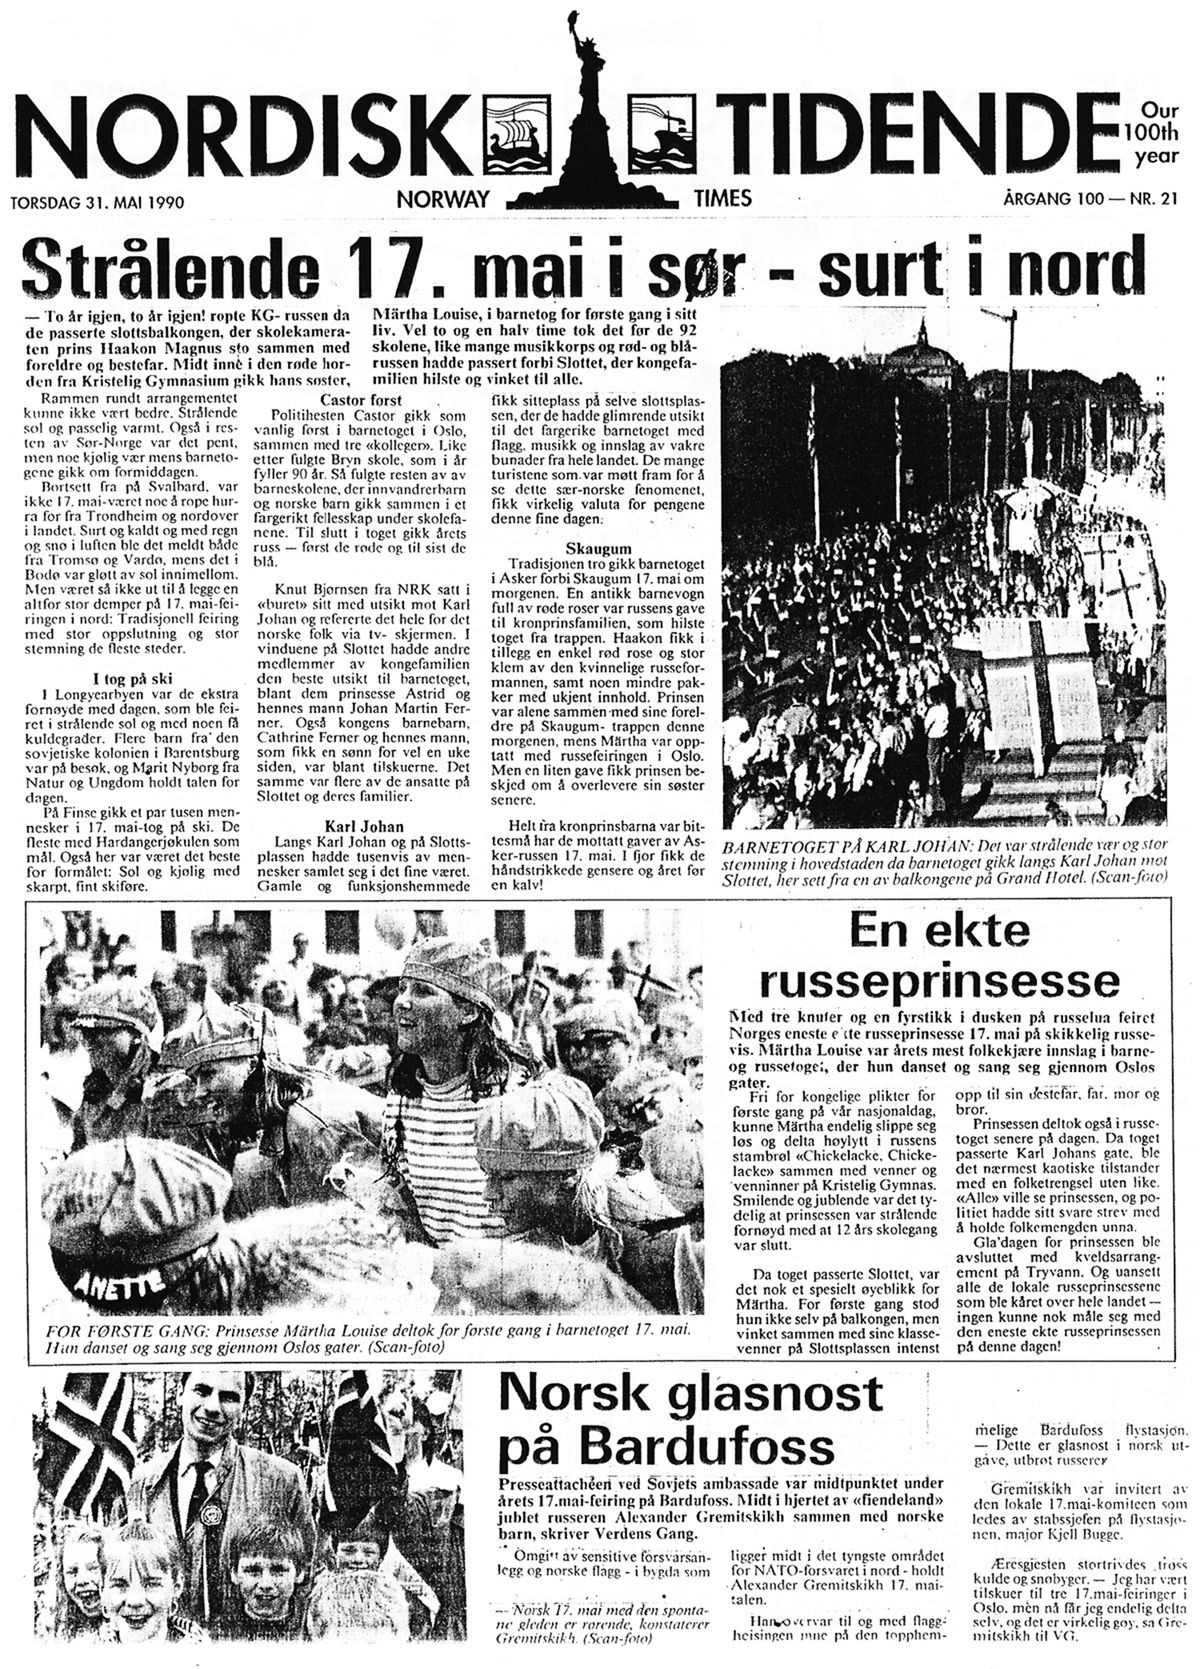 From the wayback machine, the back page of Norway Times from May 31, 1990, that paper's 100th year of publication.